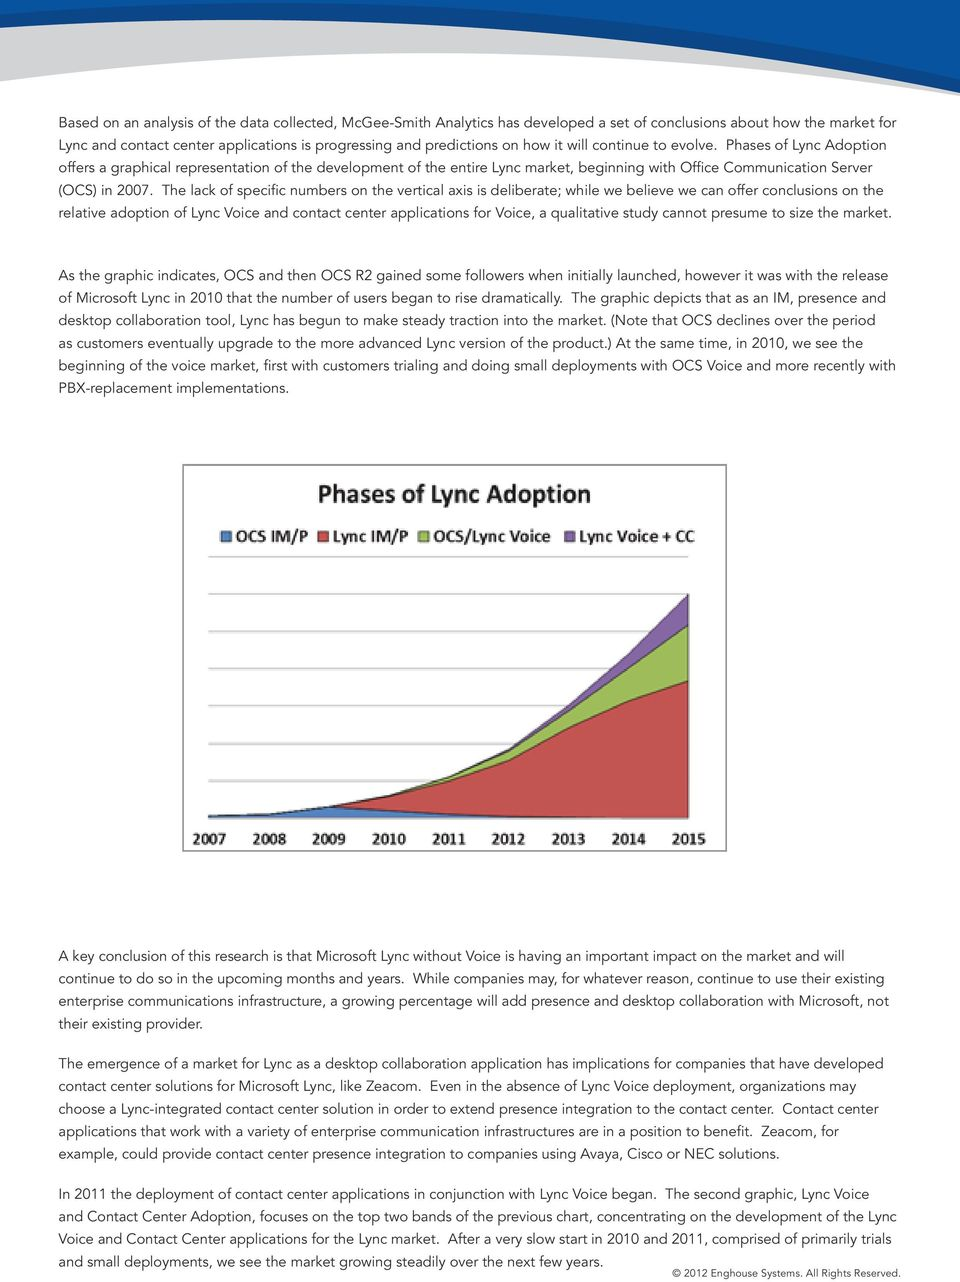 The lack of specific numbers on the vertical axis is deliberate; while we believe we can offer conclusions on the relative adoption of Lync Voice and contact center applications for Voice, a